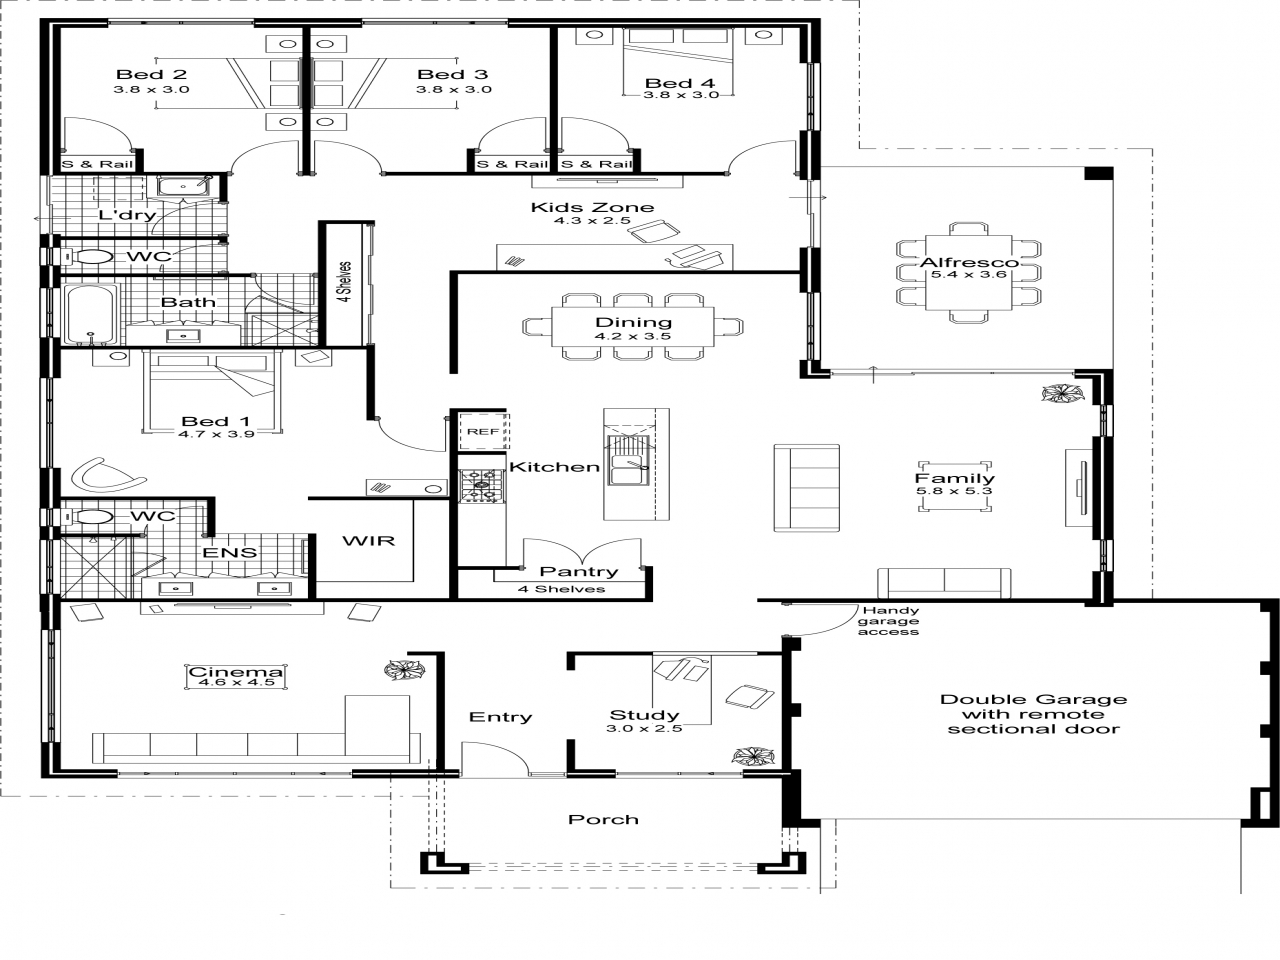 Best open floor plans award winning open floor plans for Award winning ranch house plans